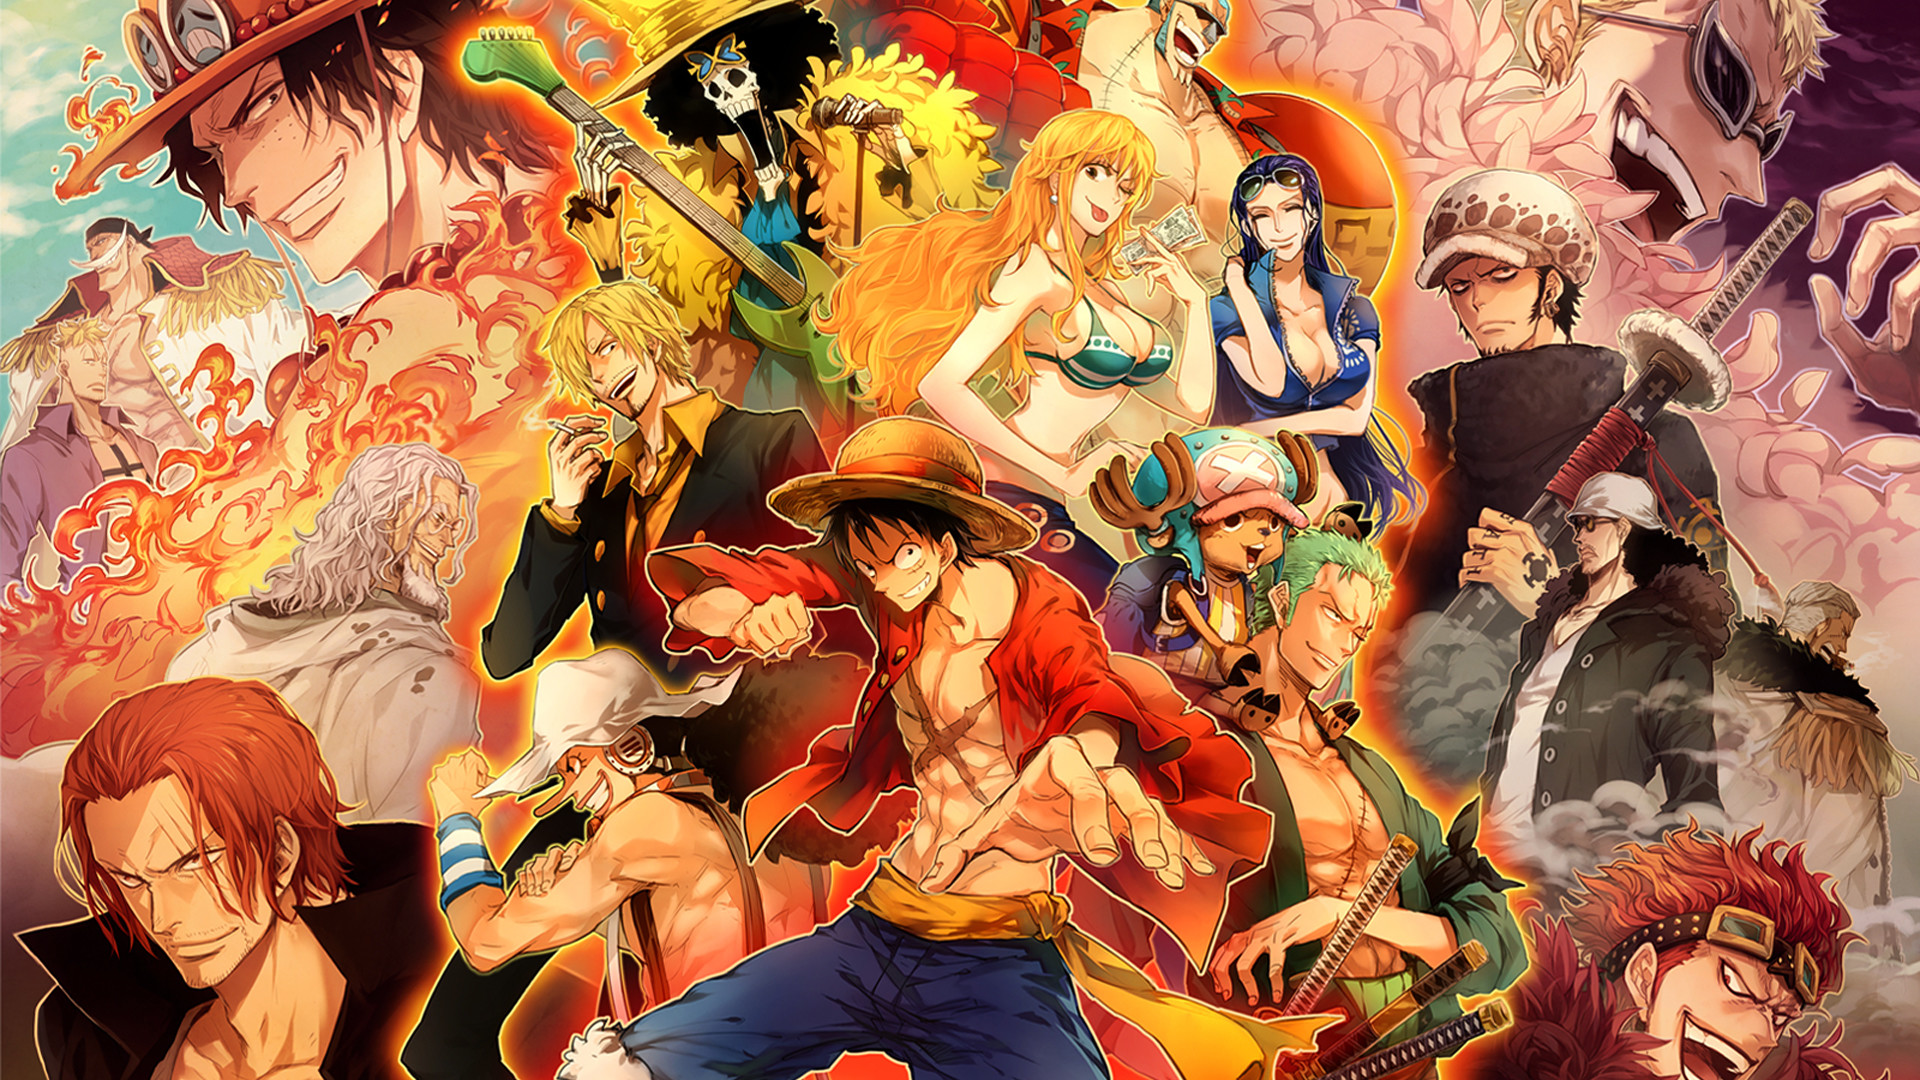 1920x1080 All Character Anime Movie One Piece Wallpaper For Desktop HD #26820929